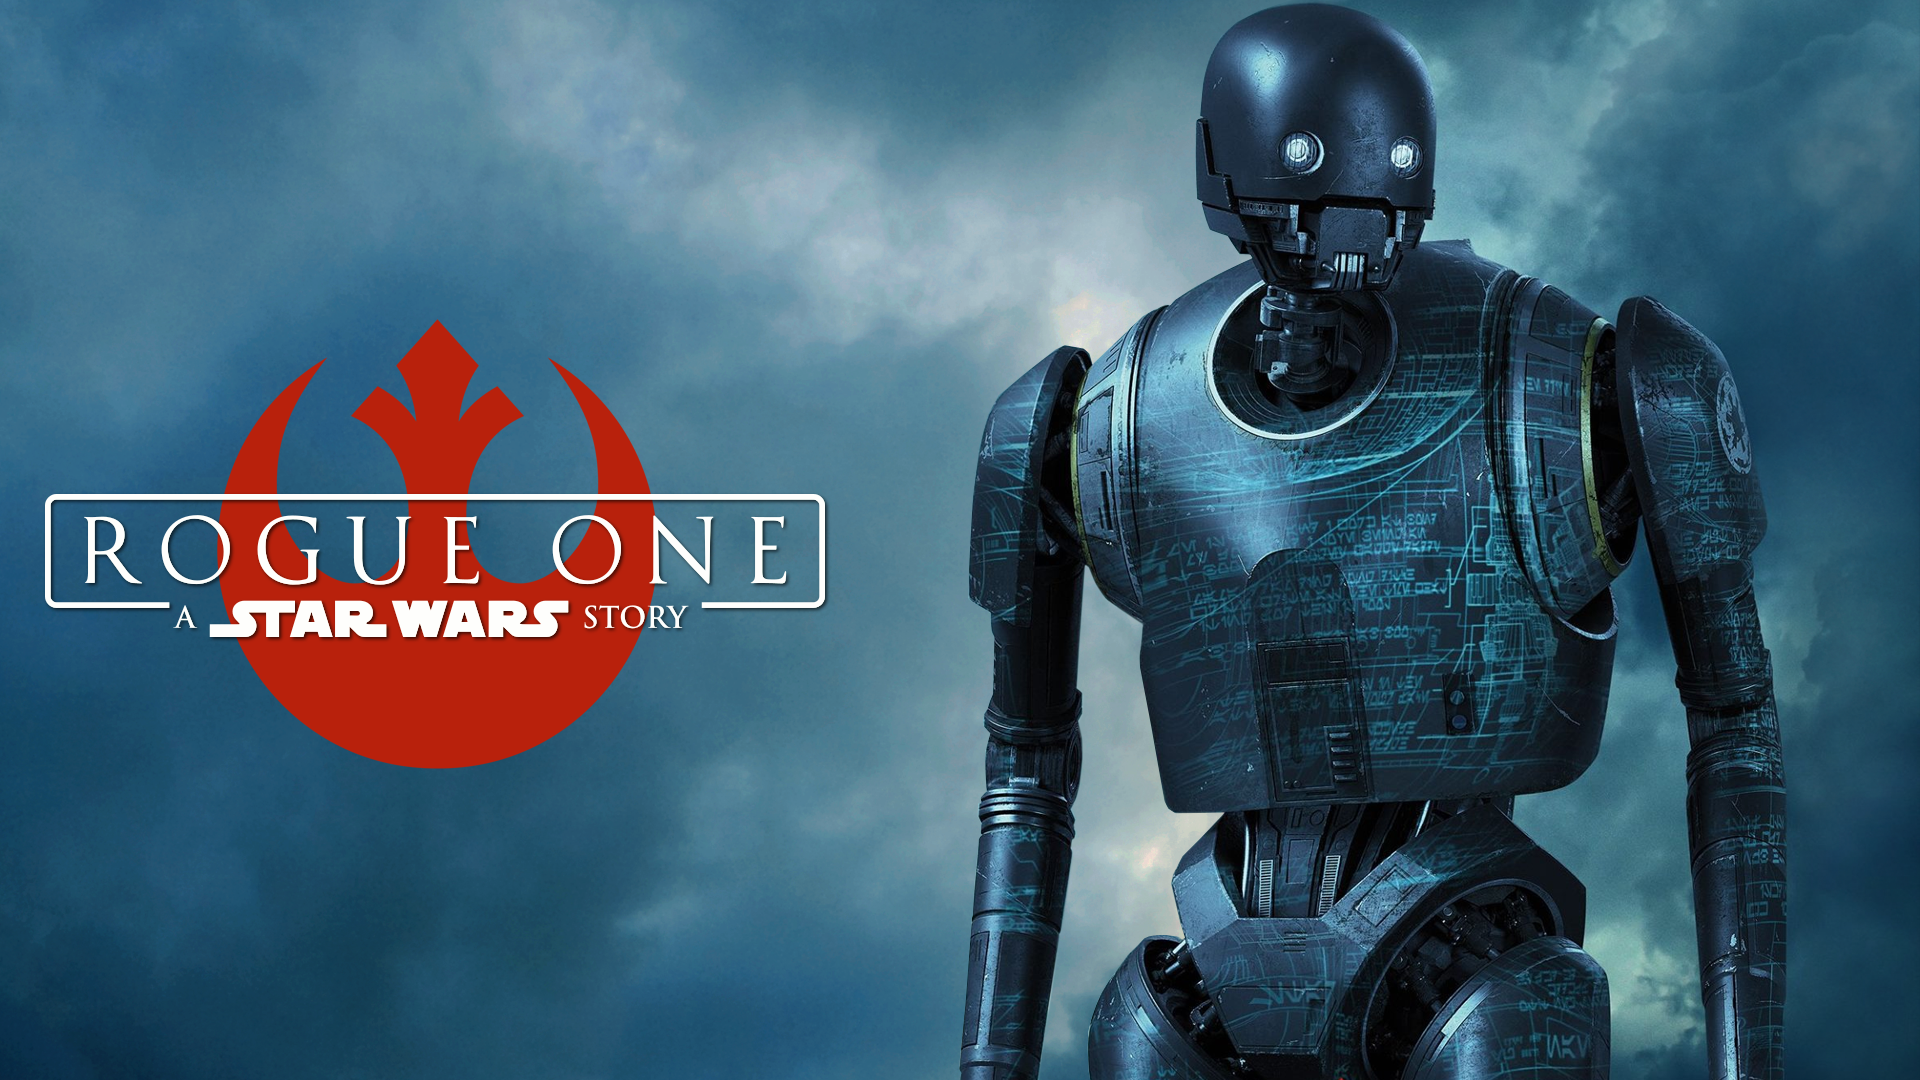 Star Wars Rogue One Wallpaper: Rogue One Wallpaper (K-2SO 2) By Spirit--Of-Adventure On